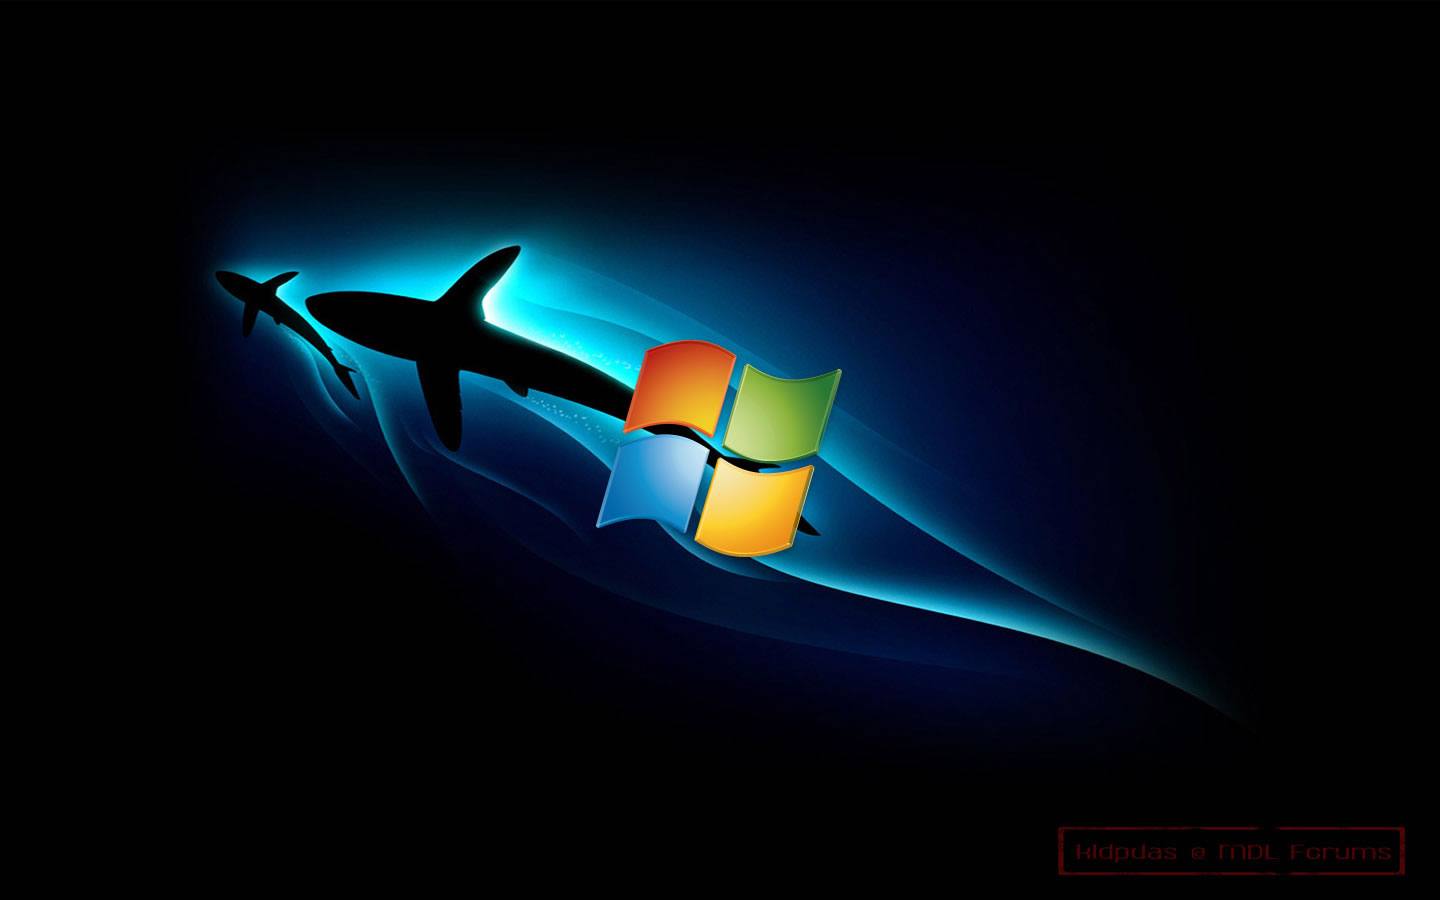 Windows 8 HD Wallpaper Dolphin Wallpaper